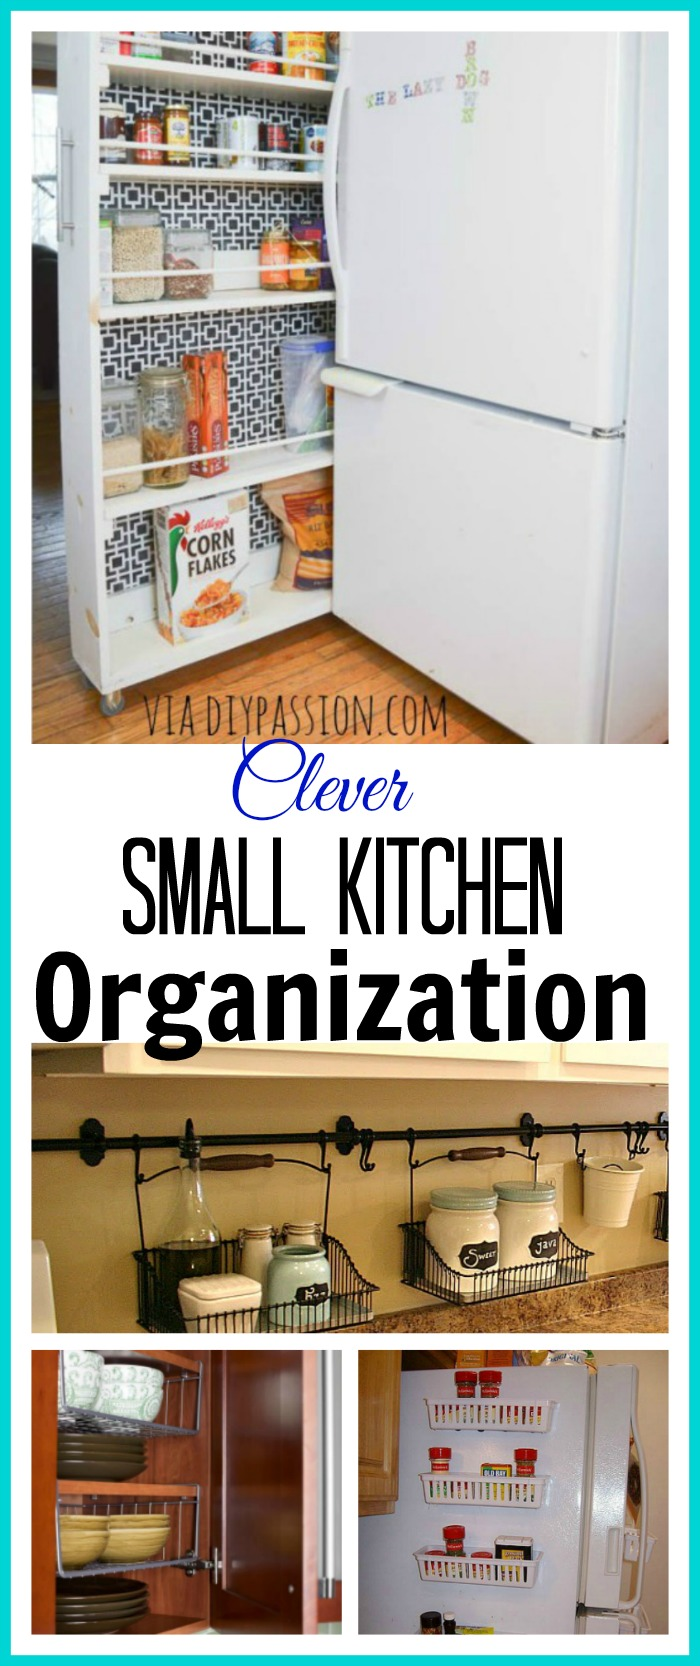 10 Ideas For Organizing A Small Kitchen- Even if you have a tiny kitchen, it can still be organized! Take a look at these 10 awesome ideas for organizing a small kitchen and maximize your space! | how to organize a small space, organize an apartment, organize a tiny kitchen, #homeOrganization #organizing #kitchen #organization #organizingTips #organize